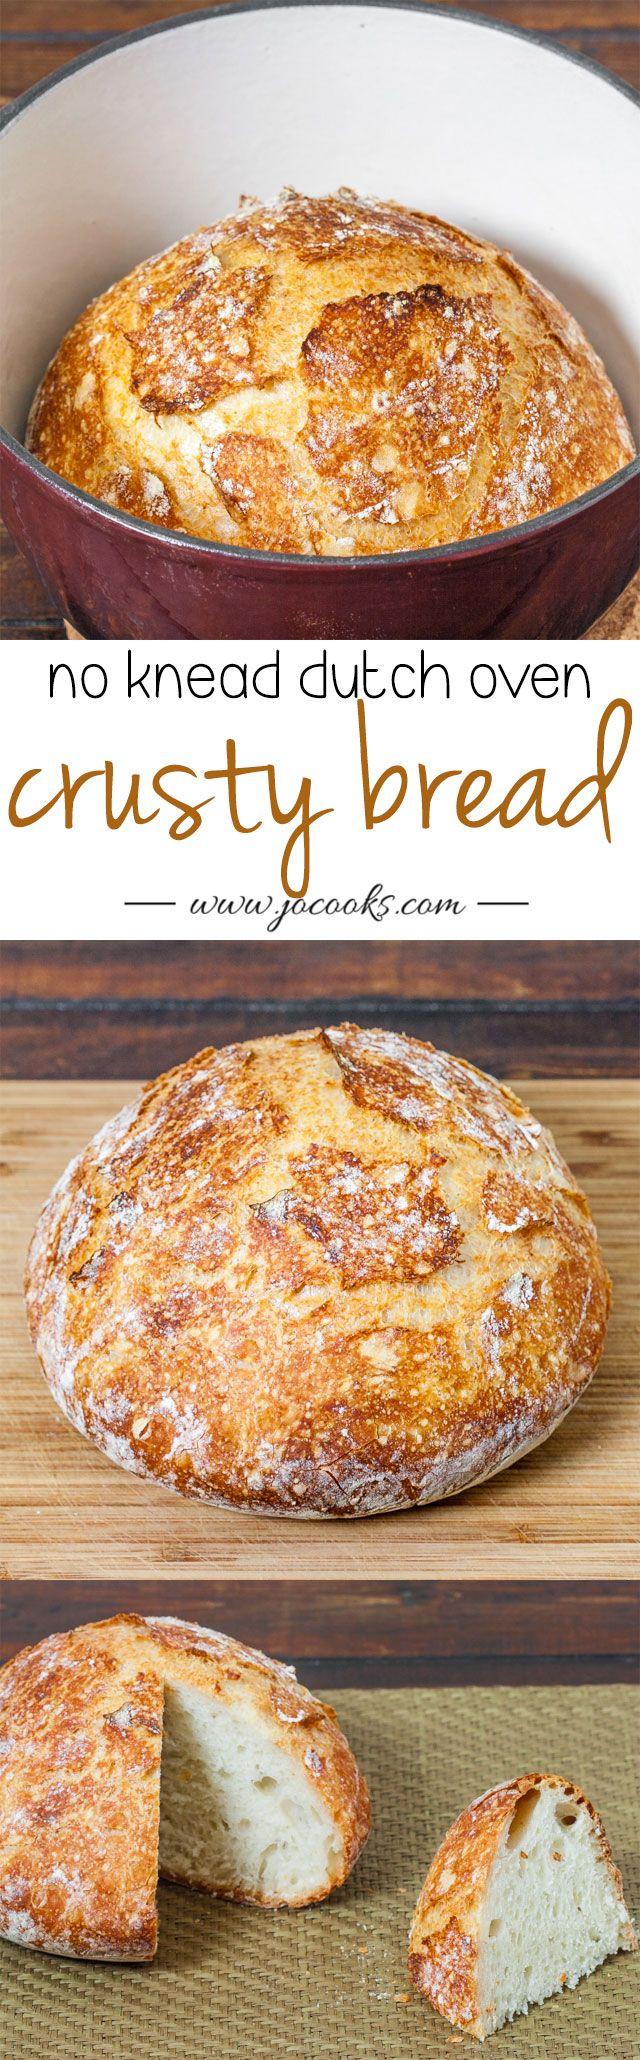 No Knead Dutch Oven Crusty Bread